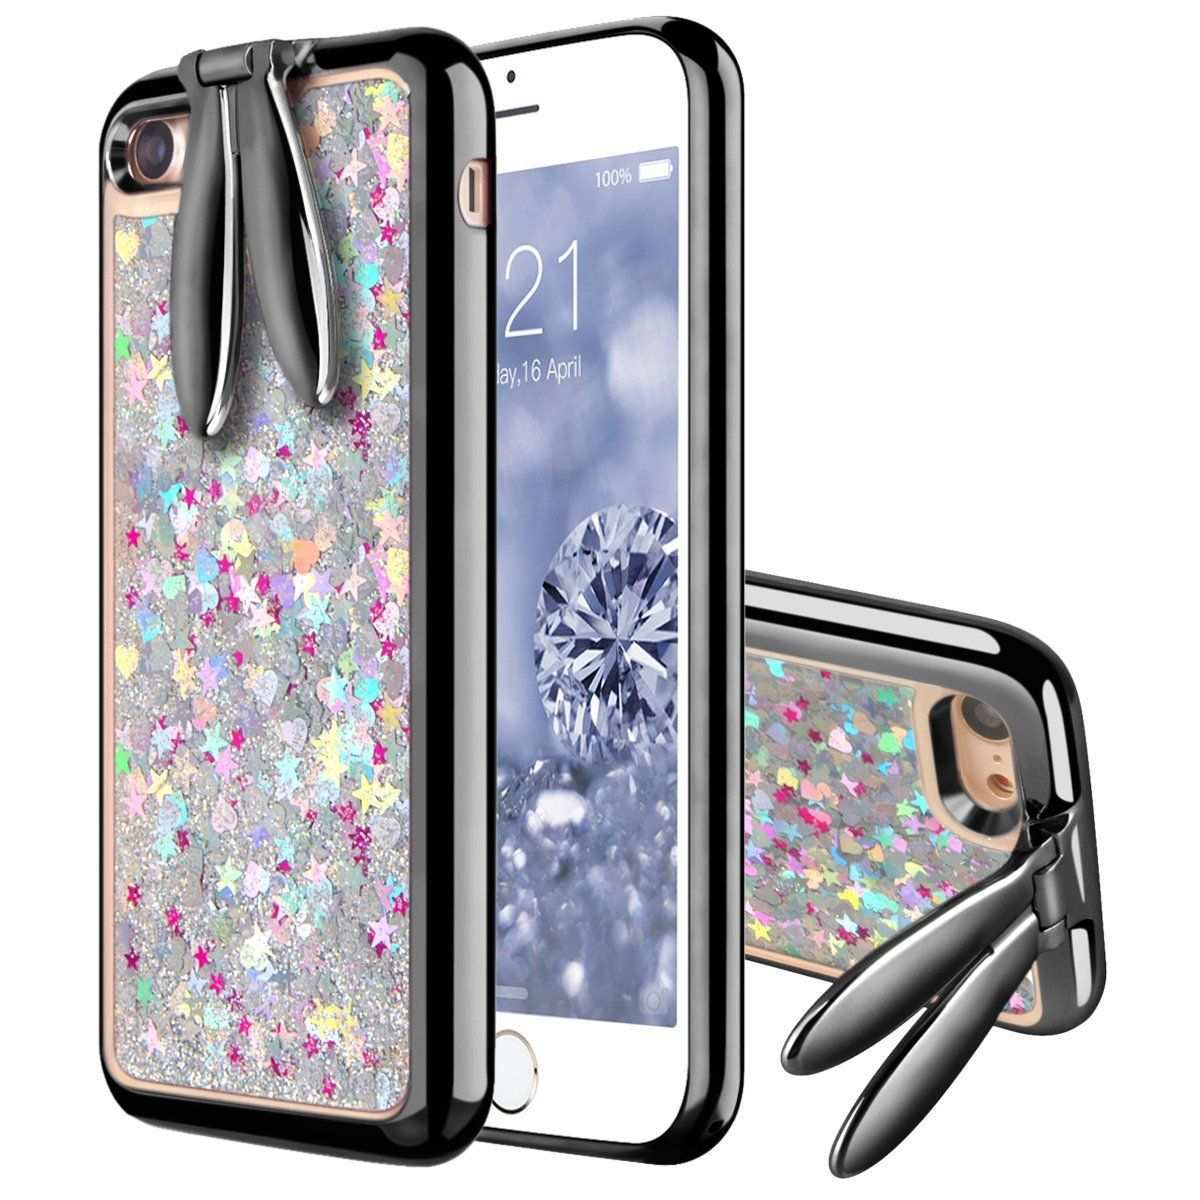 Iphone 7 Case Smartlegend Flowing Liquid Glitter 3d Bling Case With Cute Bunny Rabbit Ear Stand Sparkle Pc Hard Shell Soft Tpu Bumper Protective Iphone 7